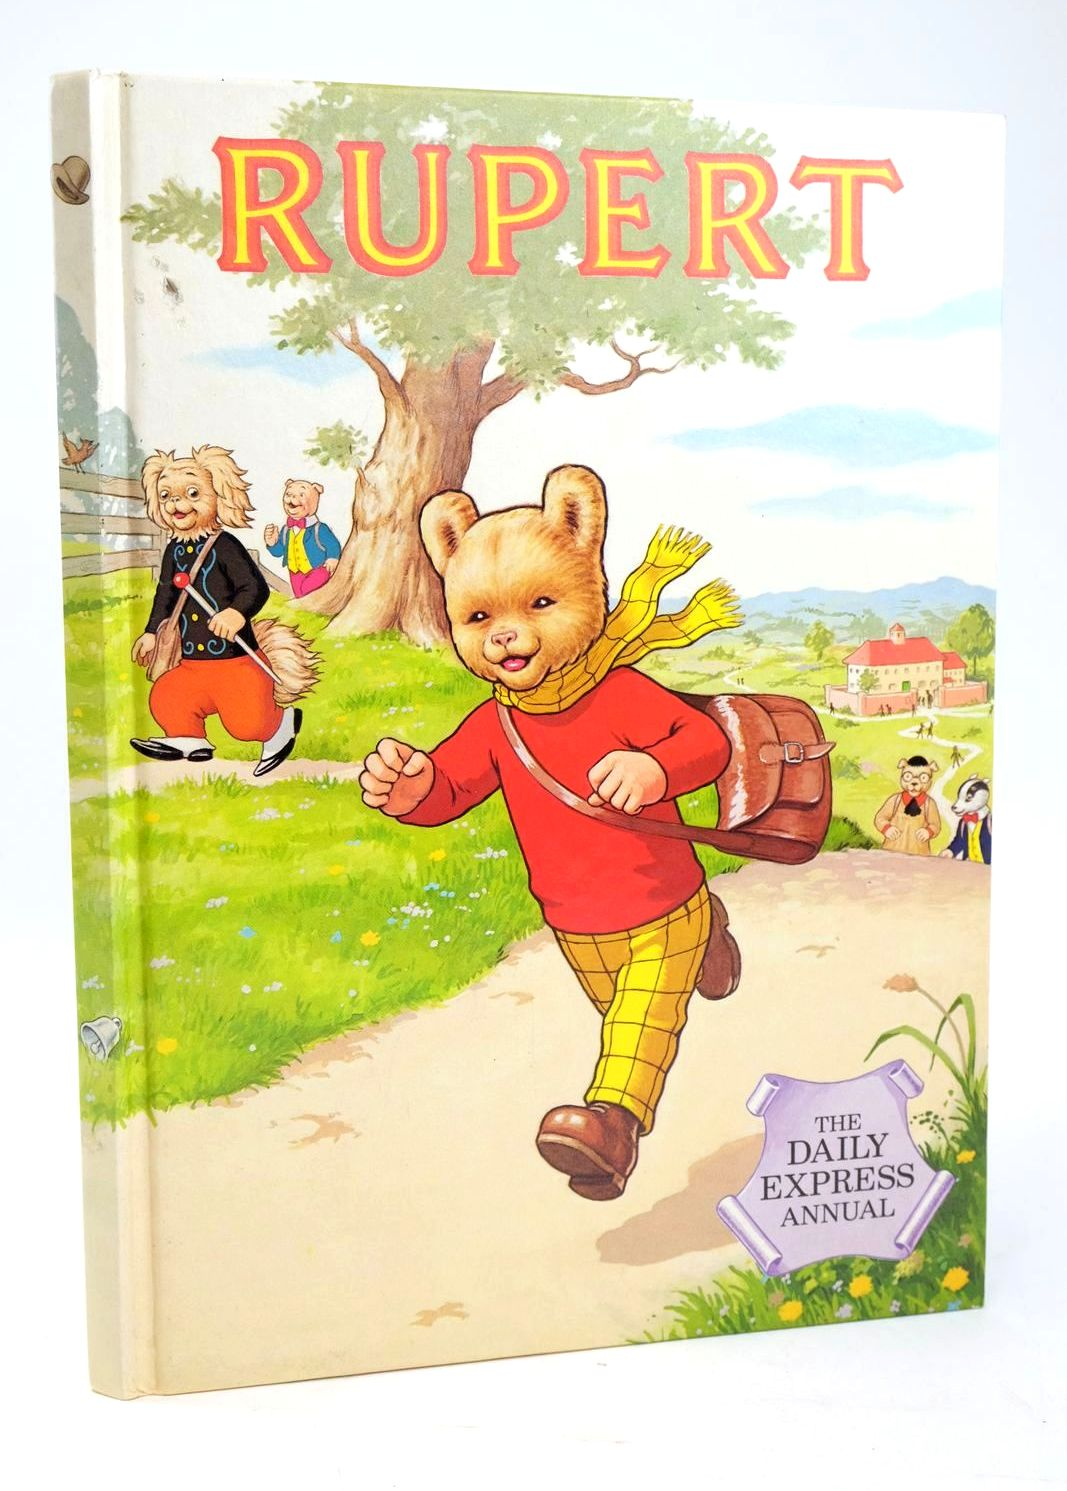 Photo of RUPERT ANNUAL 1984 illustrated by Harrold, John published by Express Newspapers Ltd. (STOCK CODE: 1319419)  for sale by Stella & Rose's Books